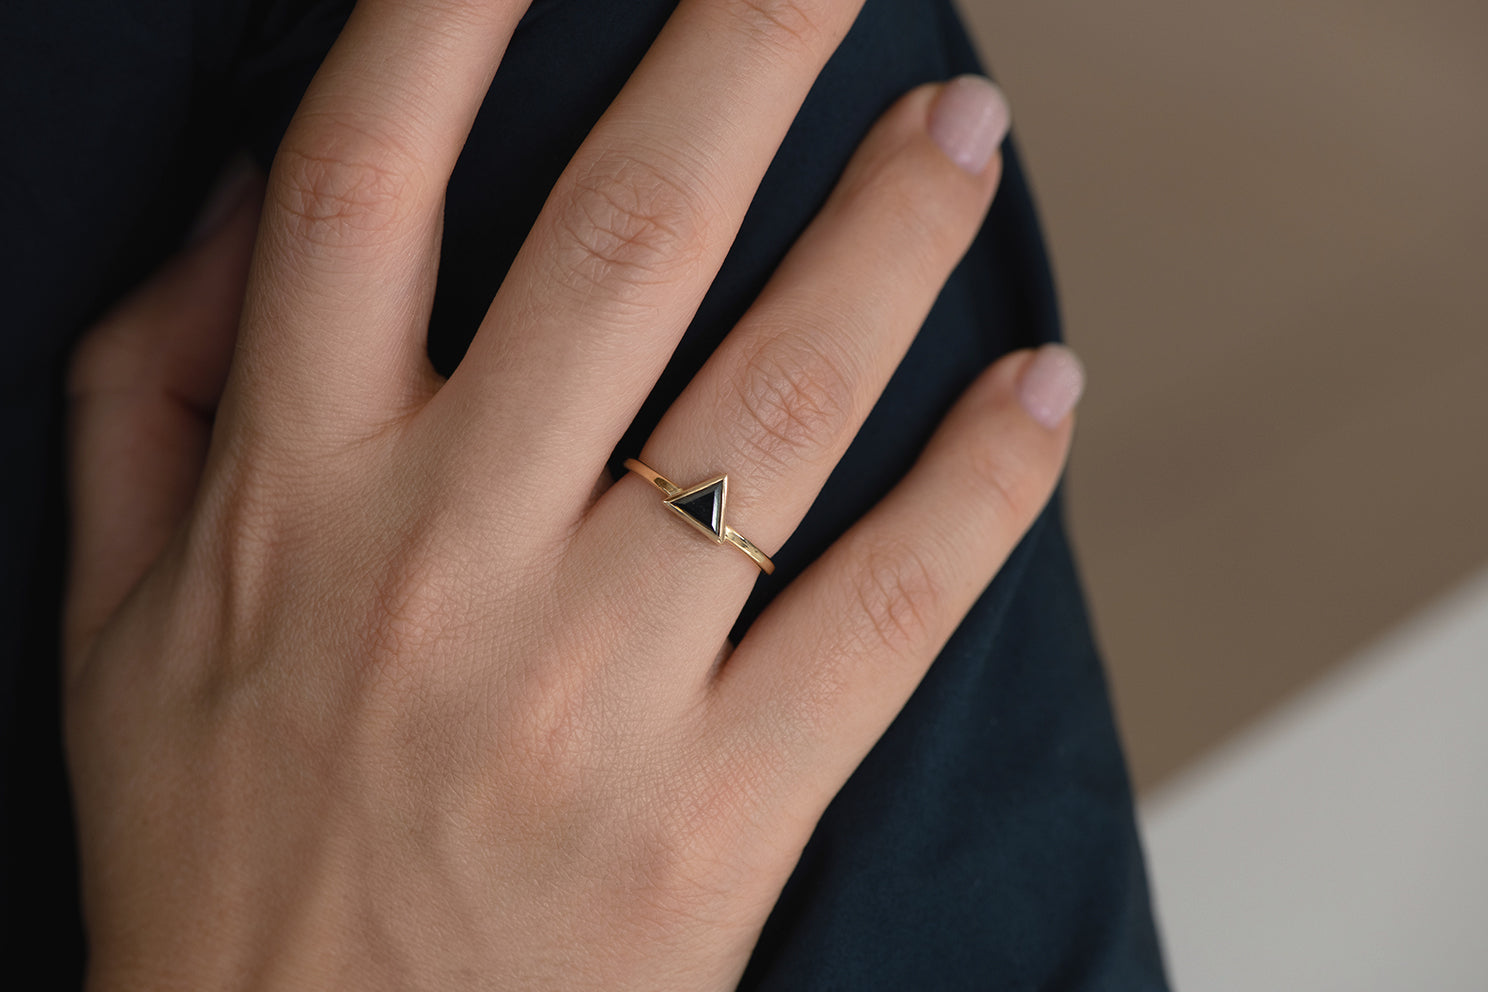 Minimalist Black Diamond Ring - Triangle Cut Diamond Ring on Hand Front Shot